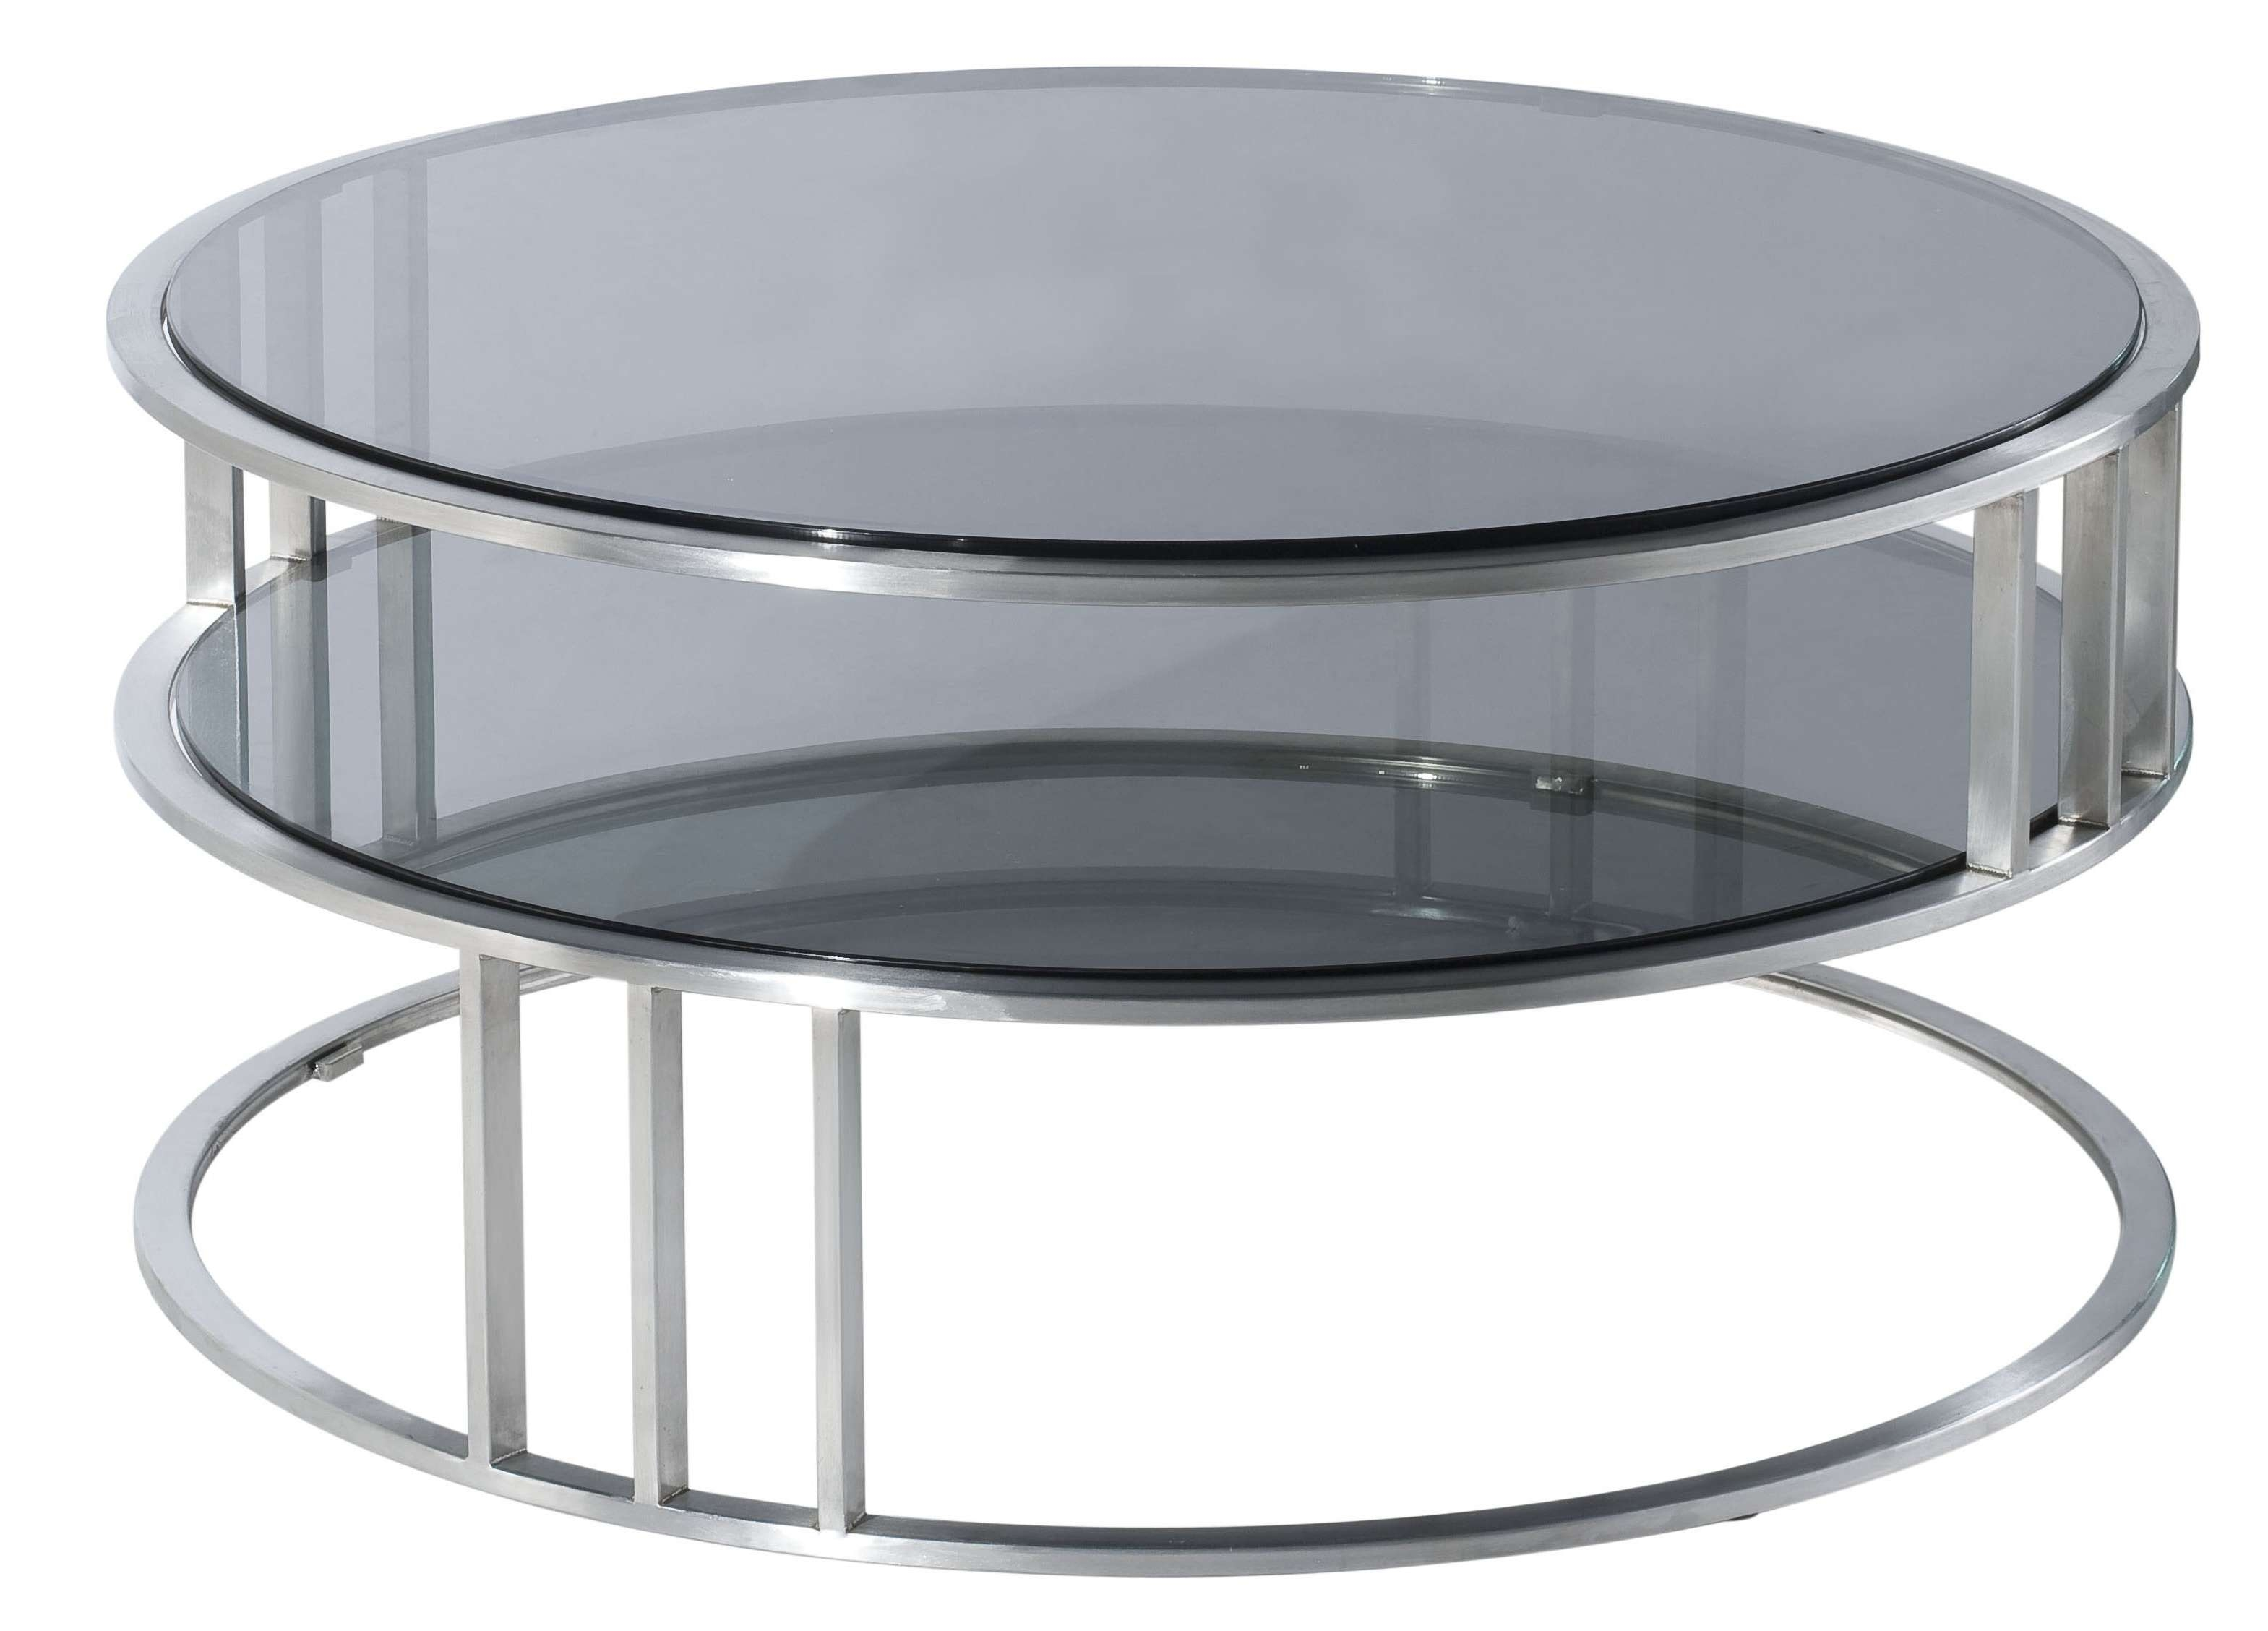 2017 Circular Coffee Tables With Storage Pertaining To Contemporary Modern Round Coffee Table With Round Glass Top And (View 1 of 20)